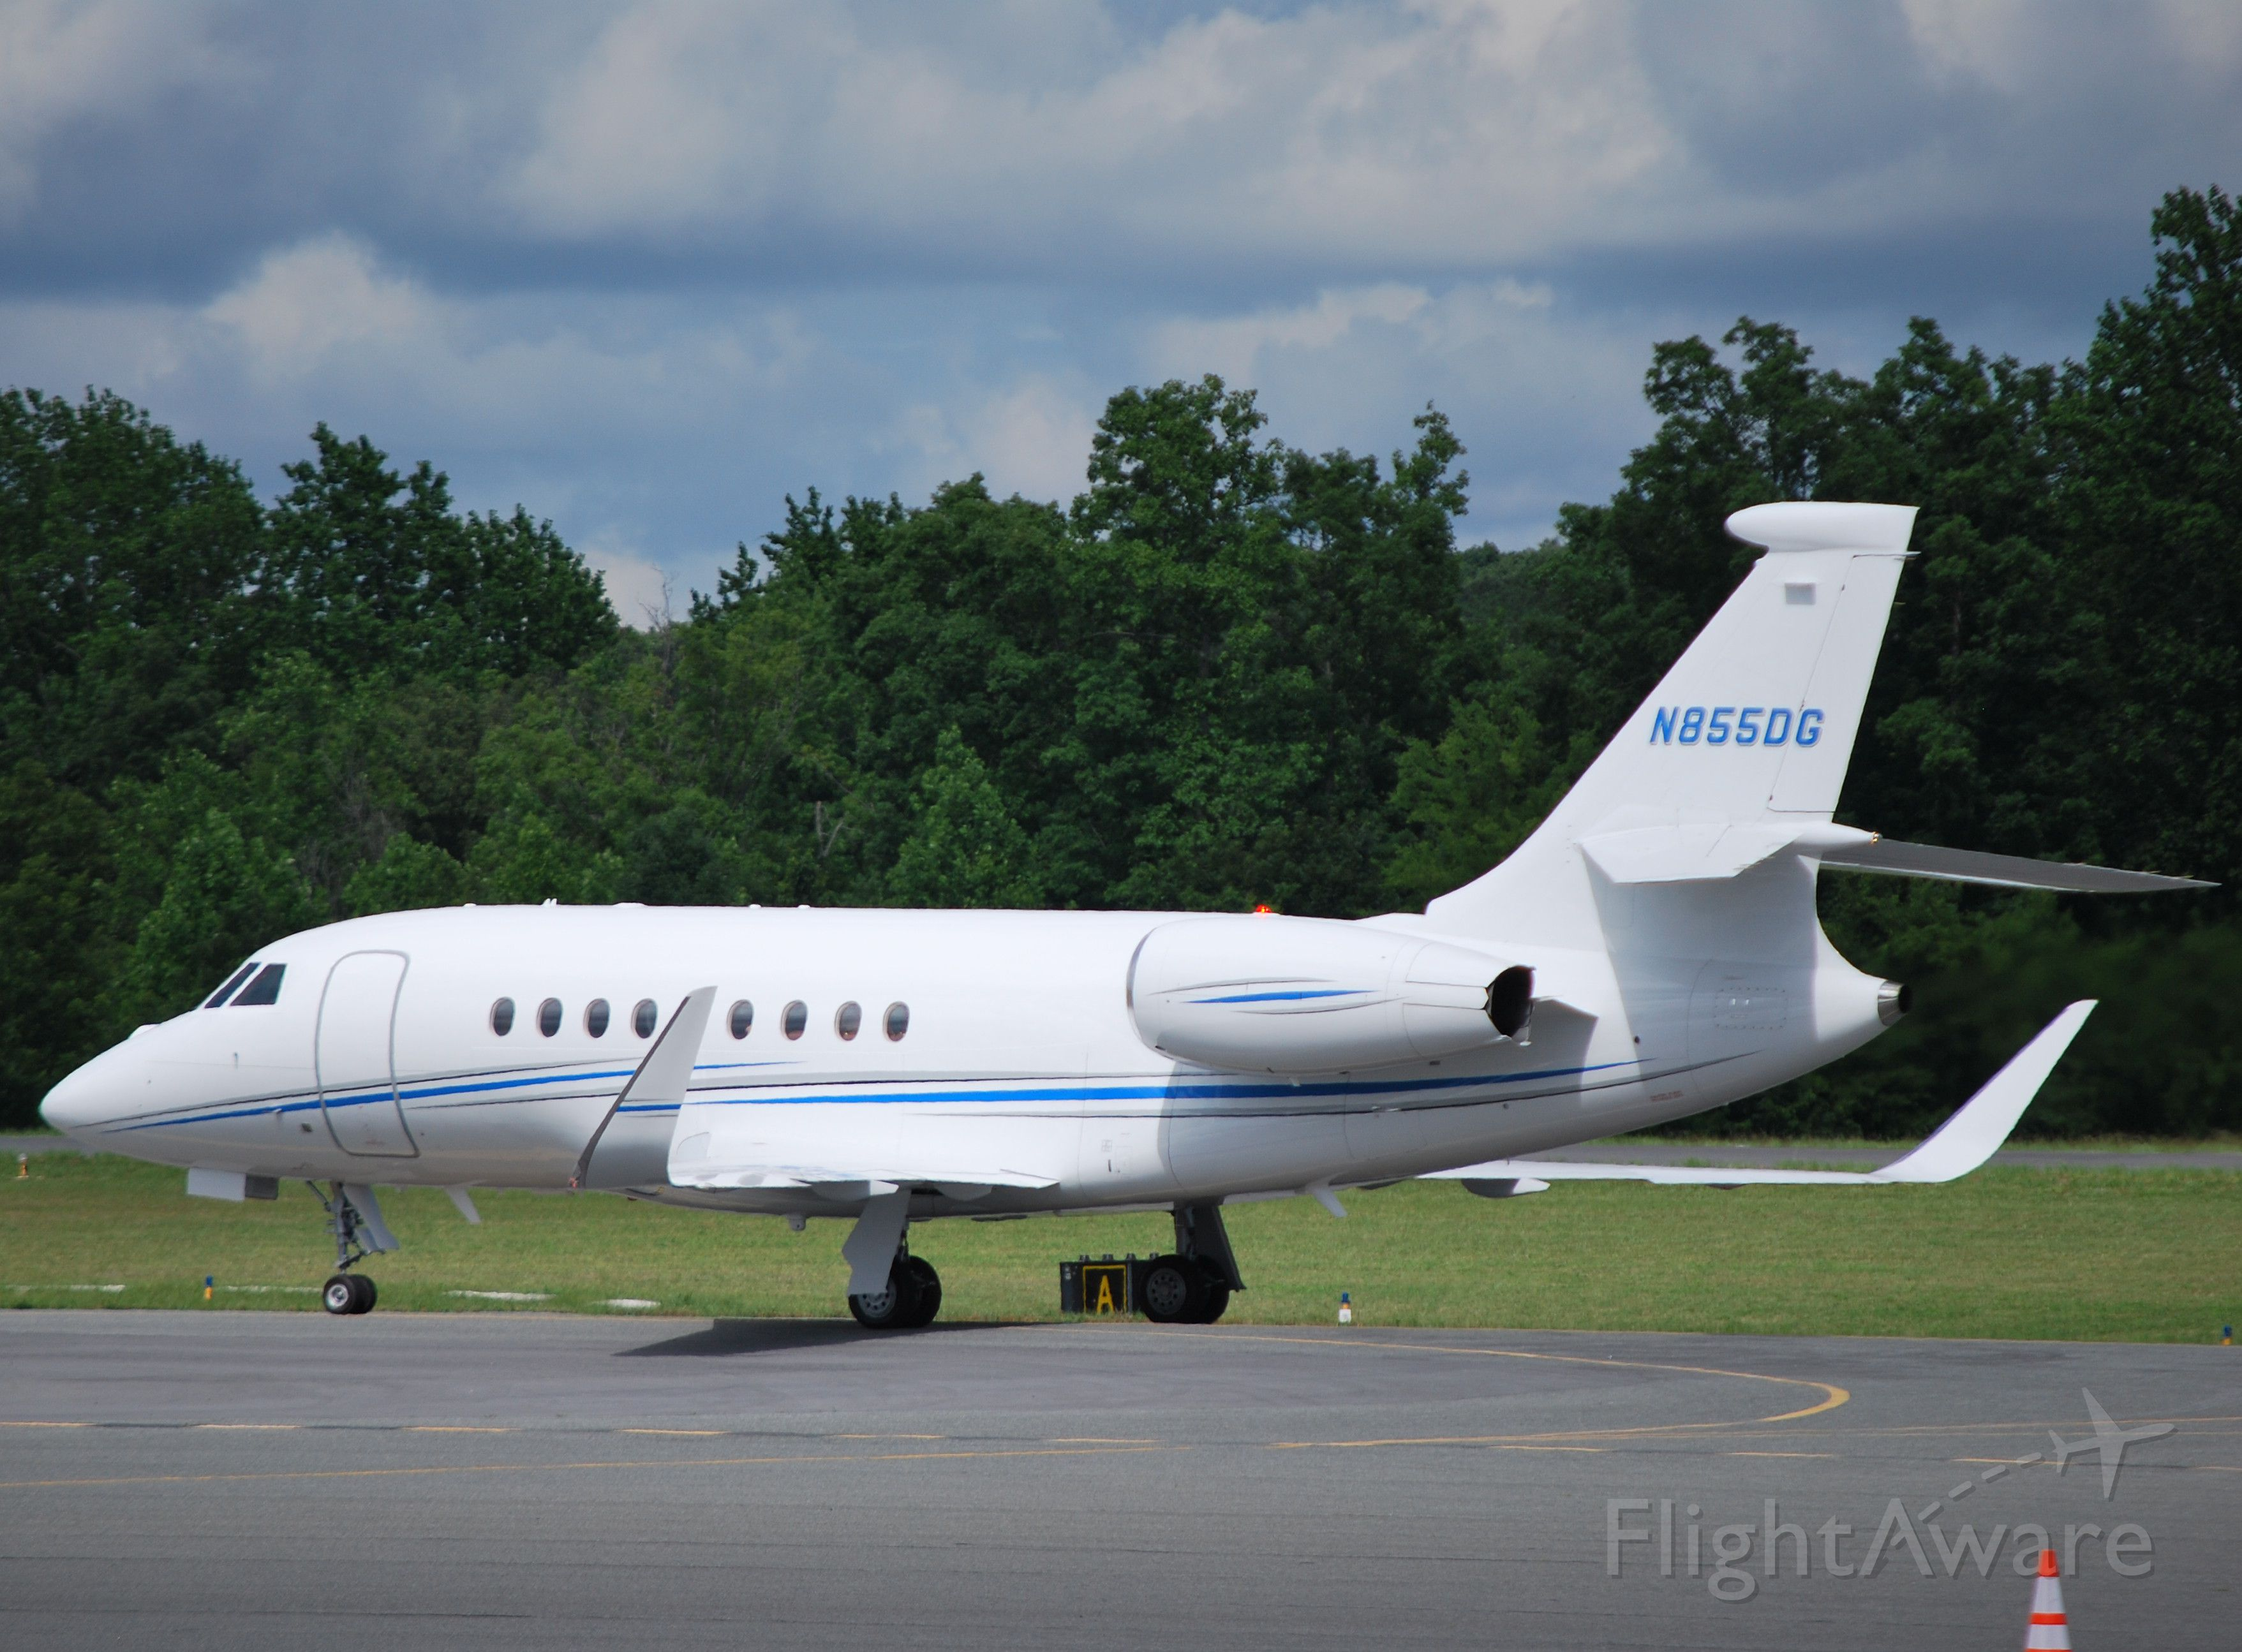 Dassault Falcon 2000 (N855DG) - DOLLAR GENERAL CORP taxiing to Hendrick Motorsports hangar to drop off passengers attending the Coca-Cola 600 at KJQF - 5/27/12